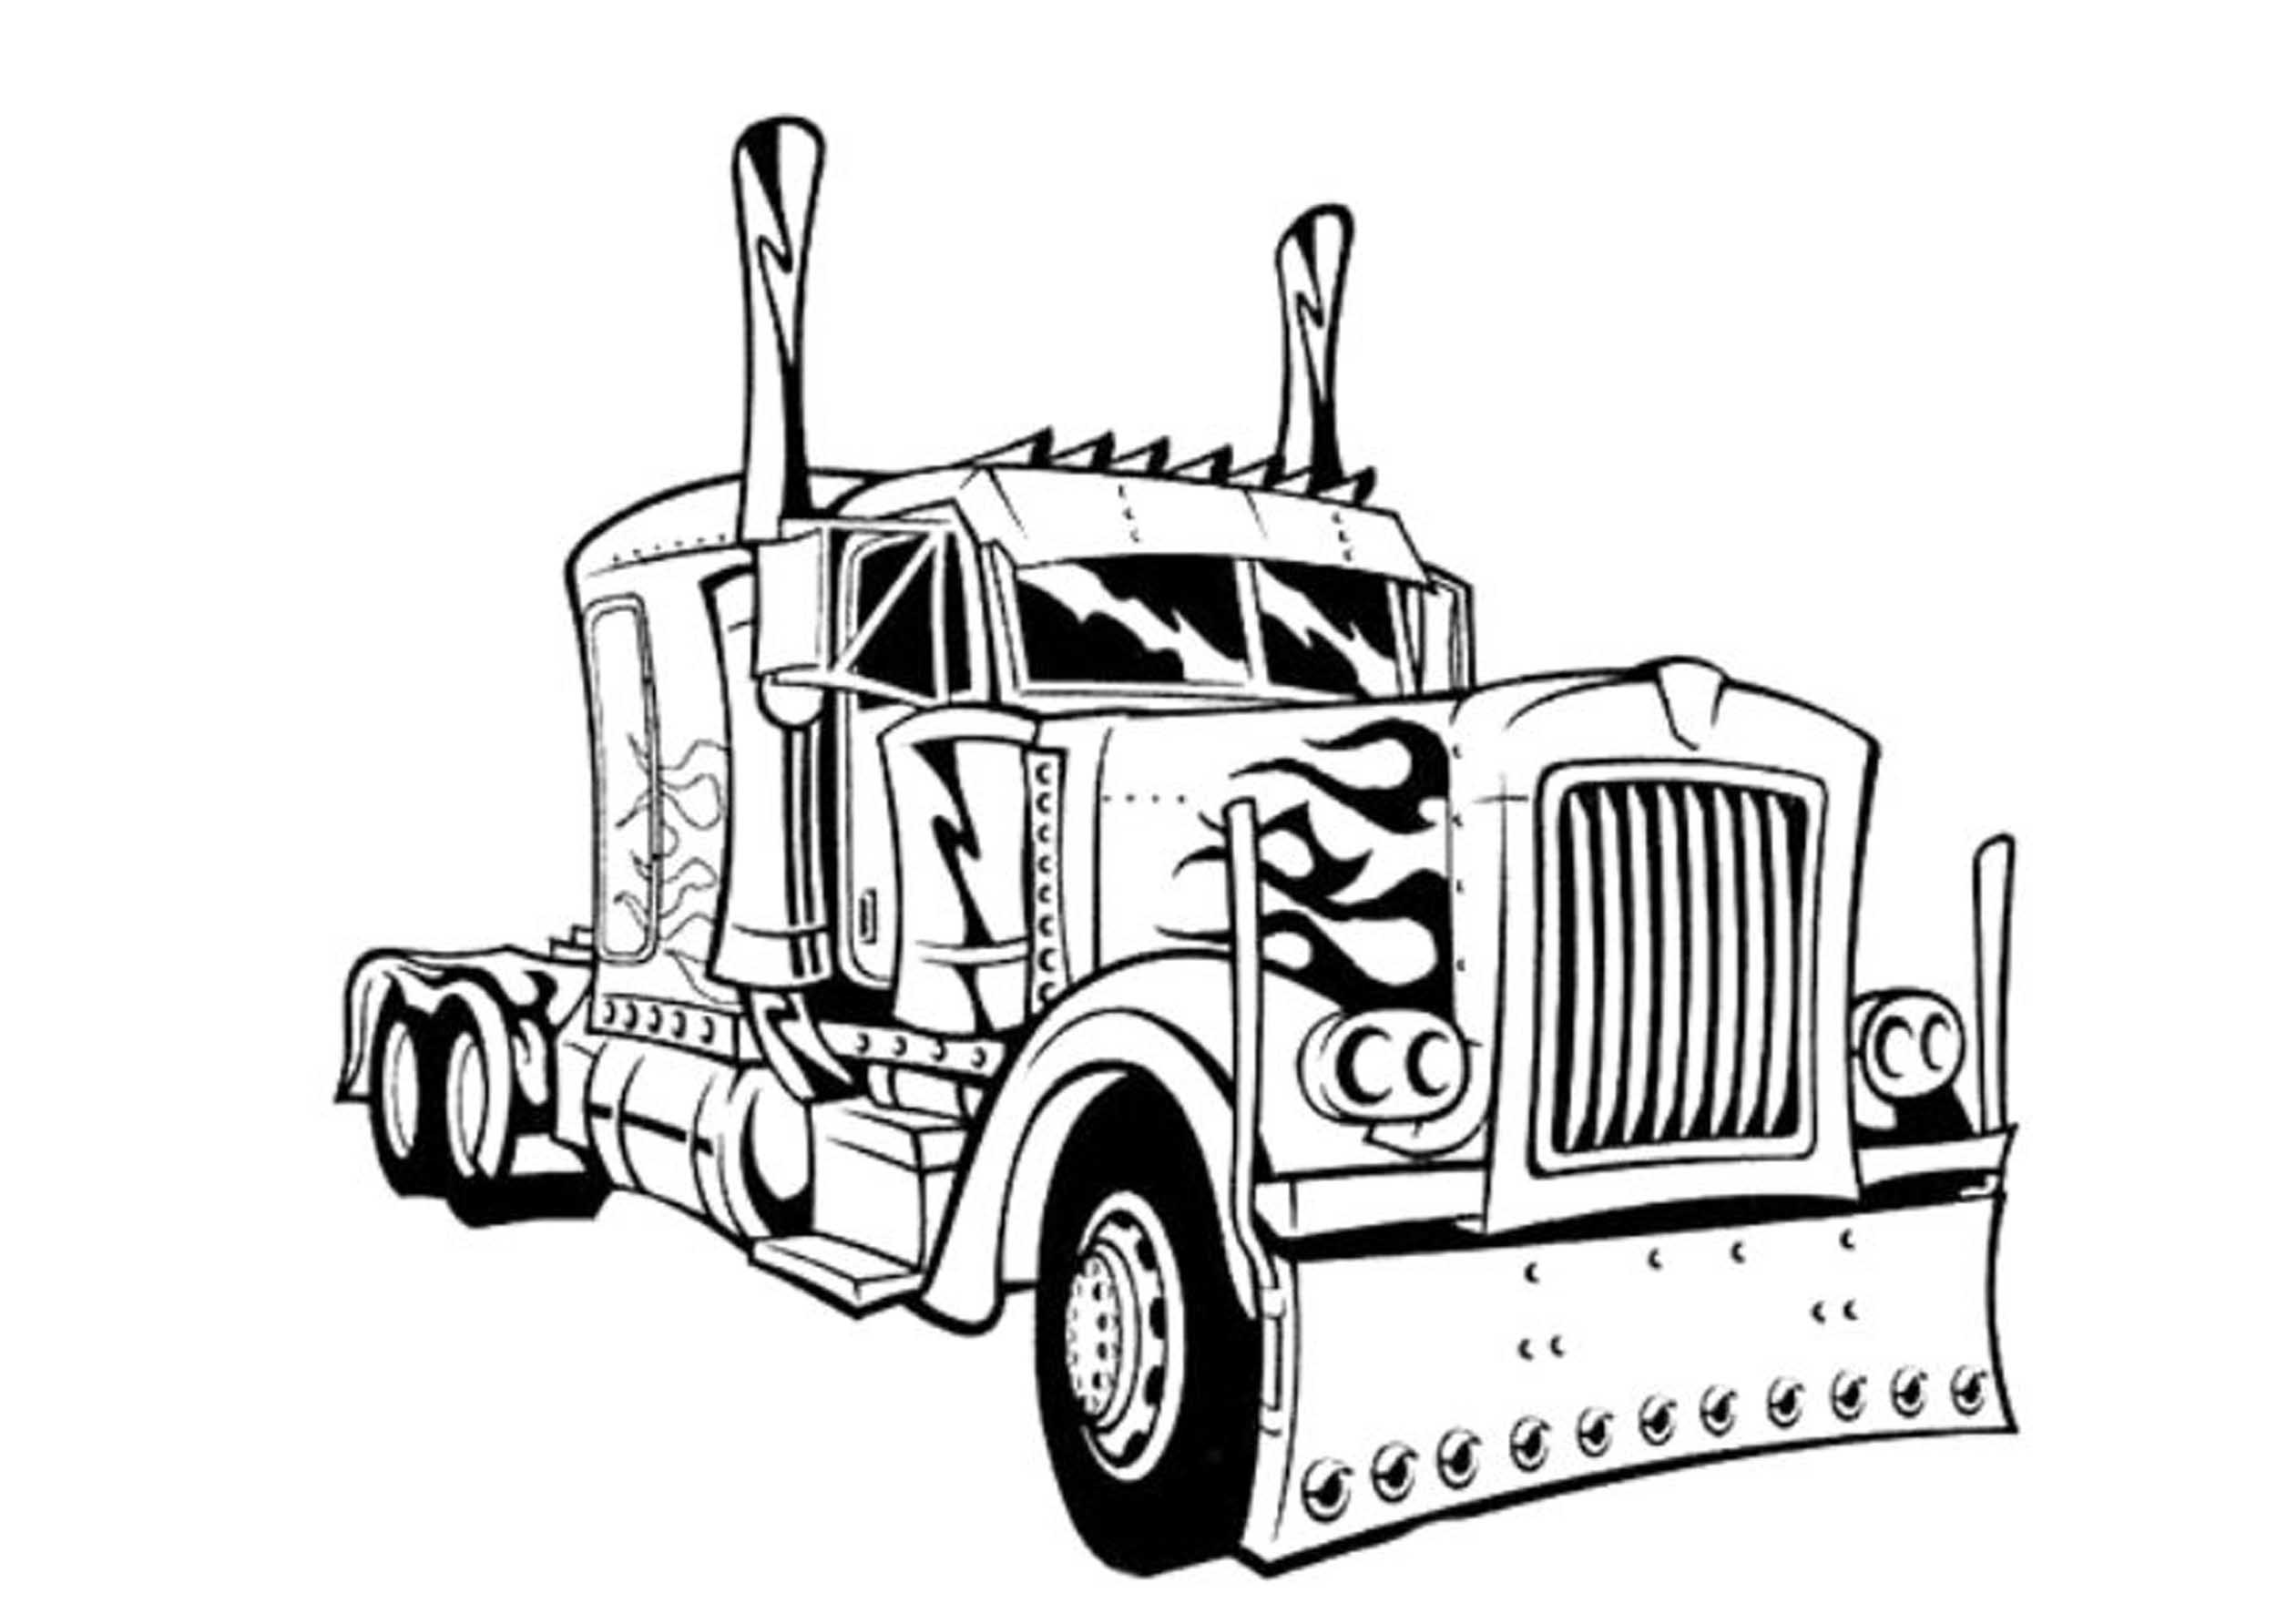 truck with trailer coloring pages single axle semi trailer dump truck coloring page kids with coloring truck pages trailer